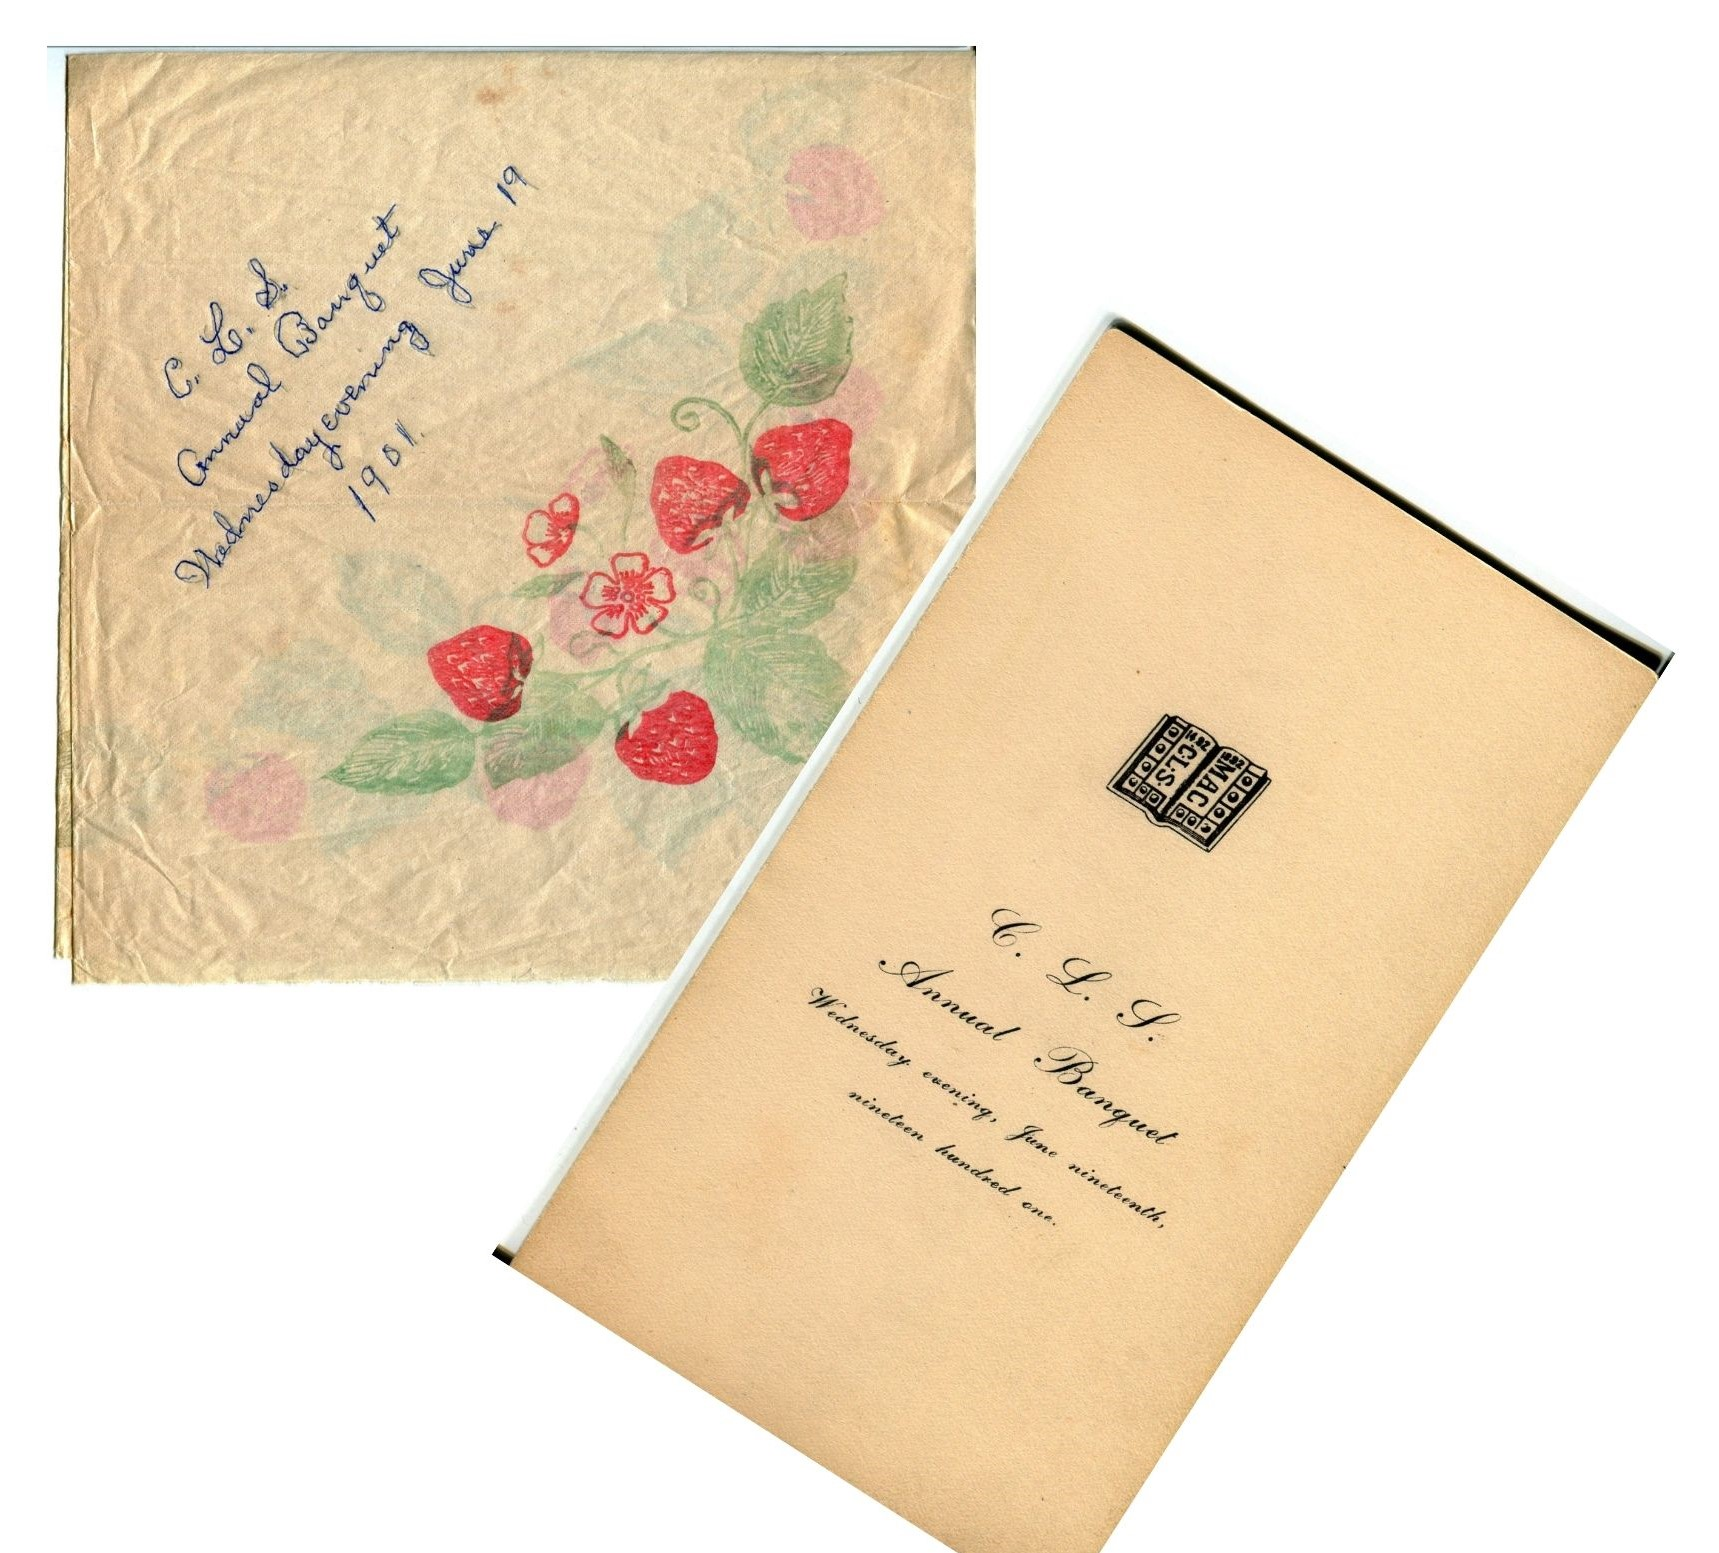 Inivtation and paper napkin from an award banquet in 1901